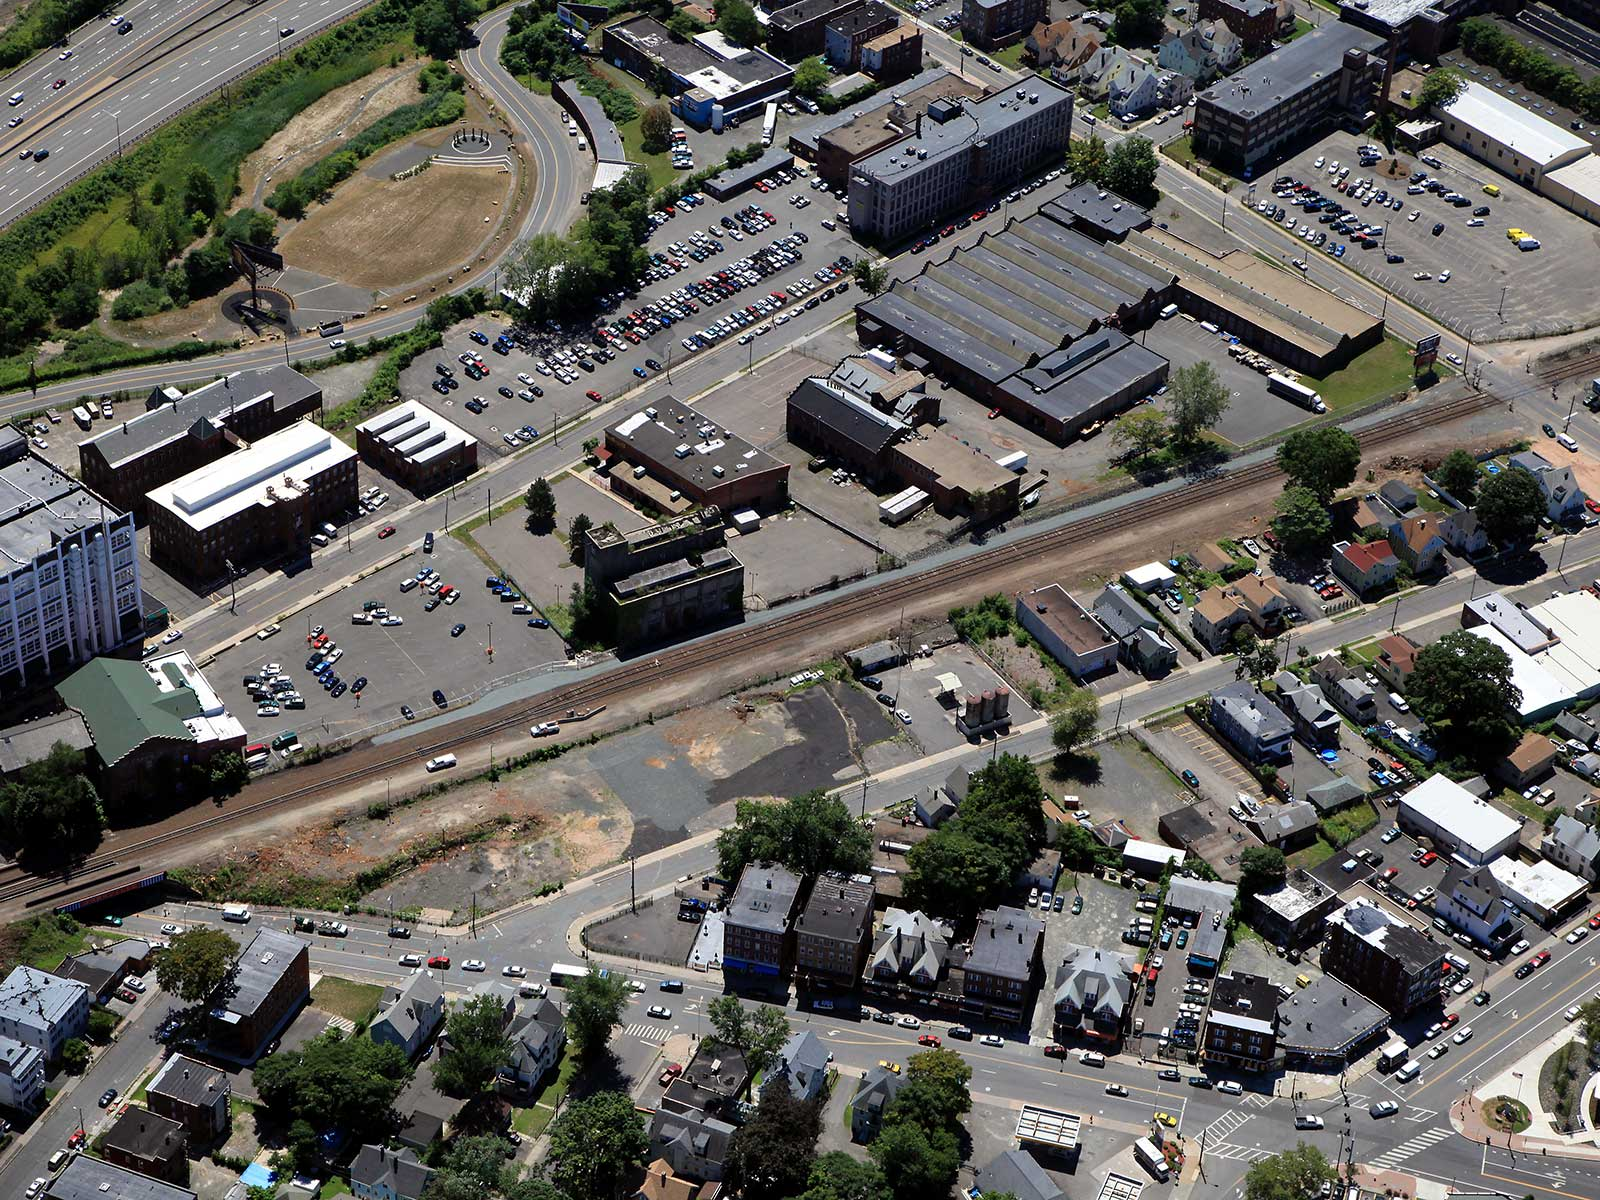 ParkvilleStreetscape_July2012.jpg